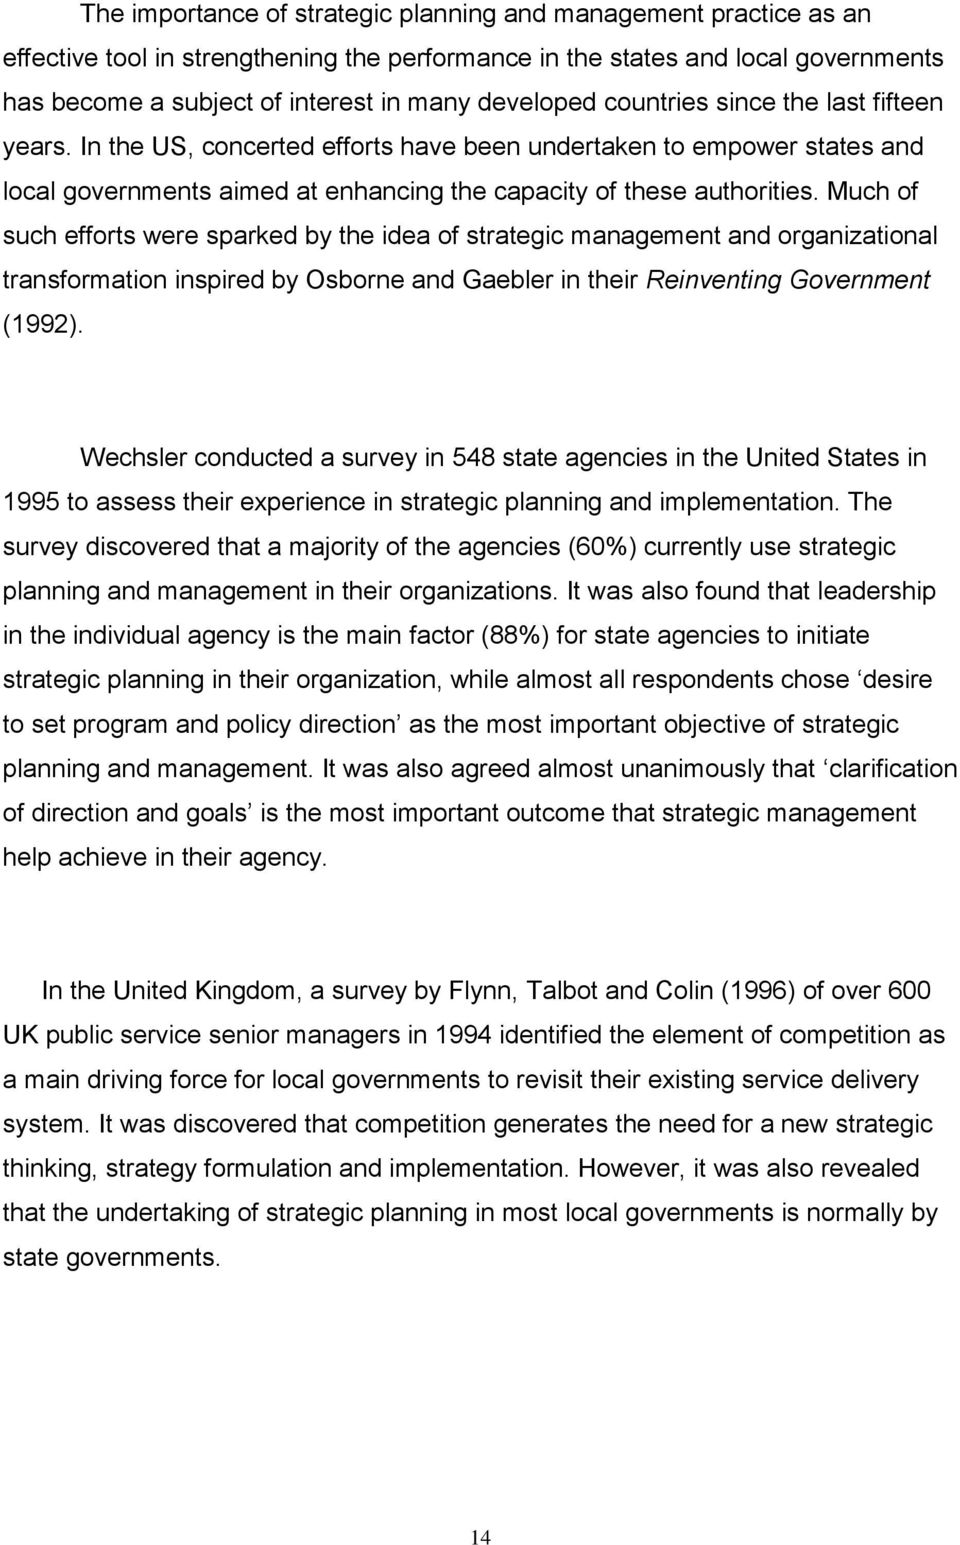 Much of such efforts were sparked by the idea of strategic management and organizational transformation inspired by Osborne and Gaebler in their Reinventing Government (1992).